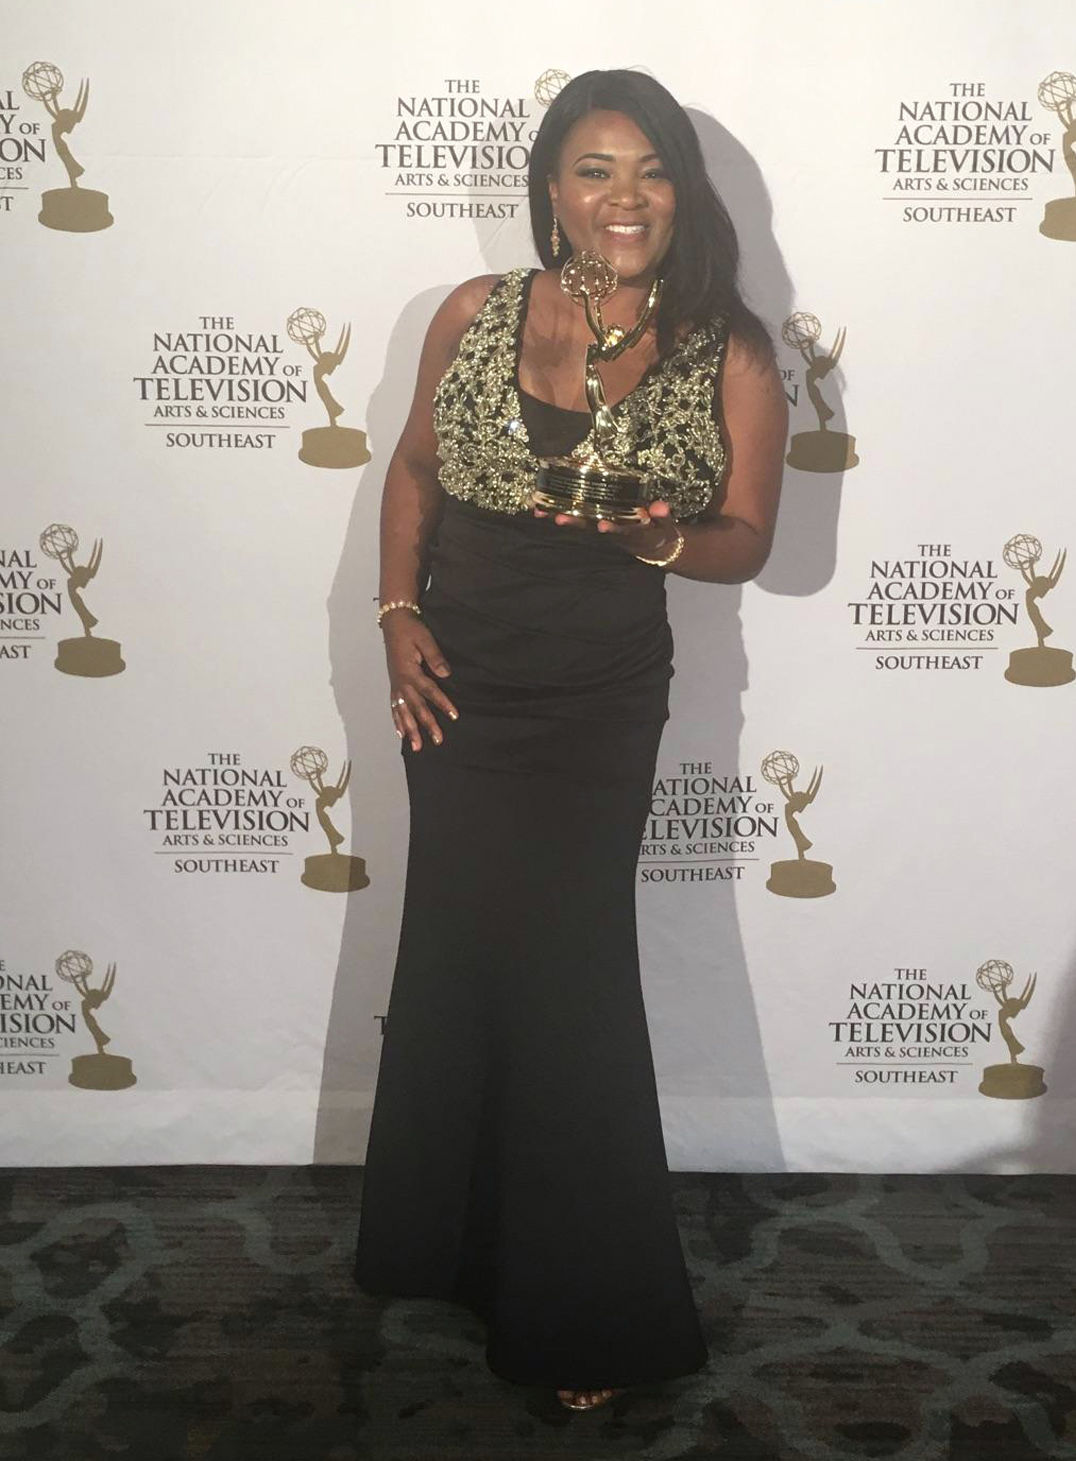 Lake City native wins Emmy Award | News | scnow com